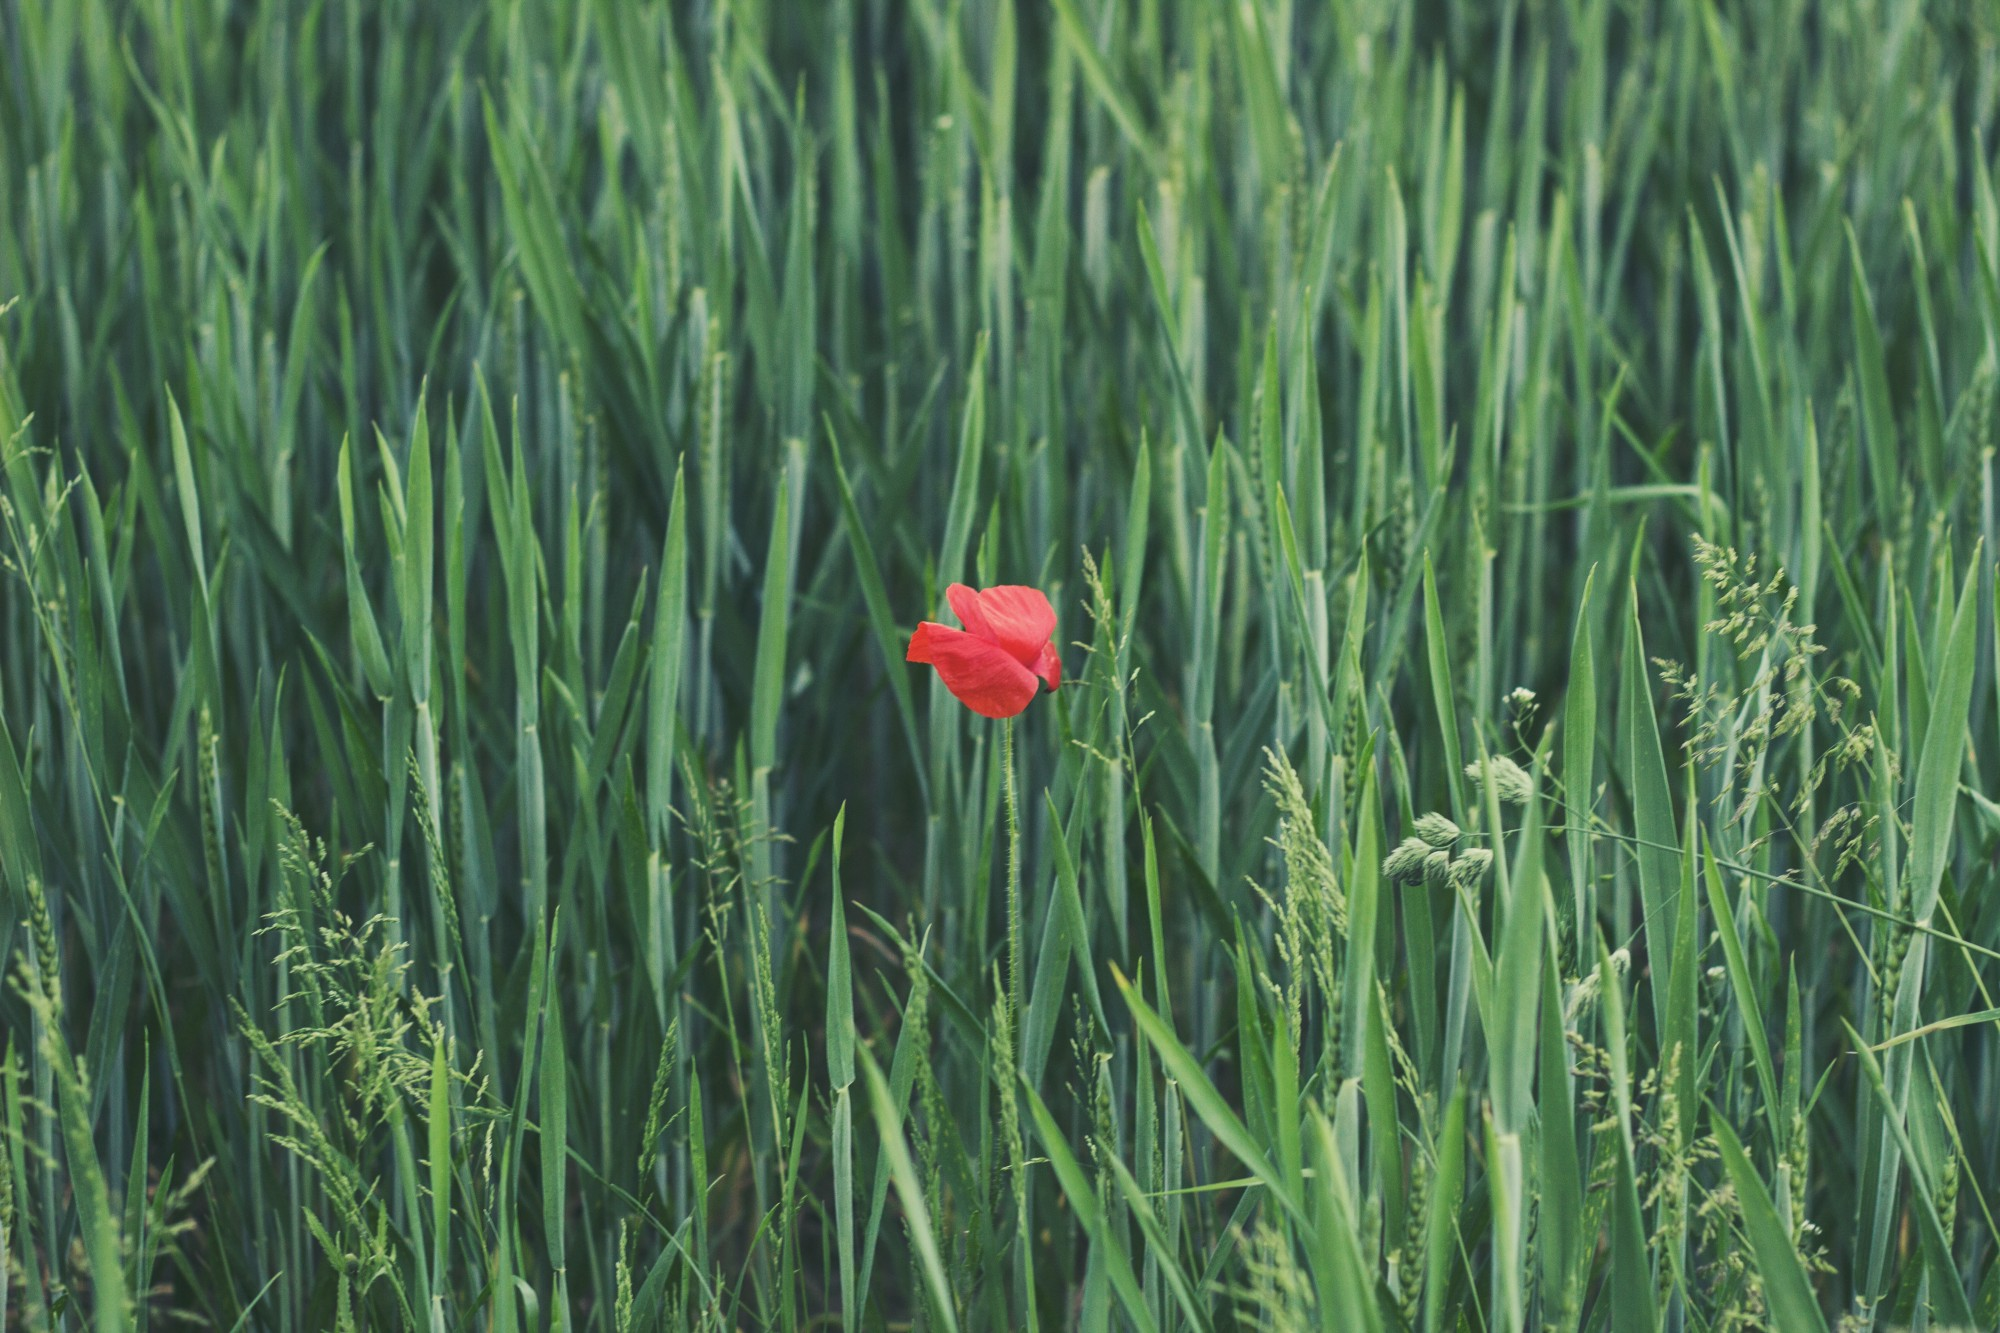 A filed of green grass with a flower in striking red color right at the middle.